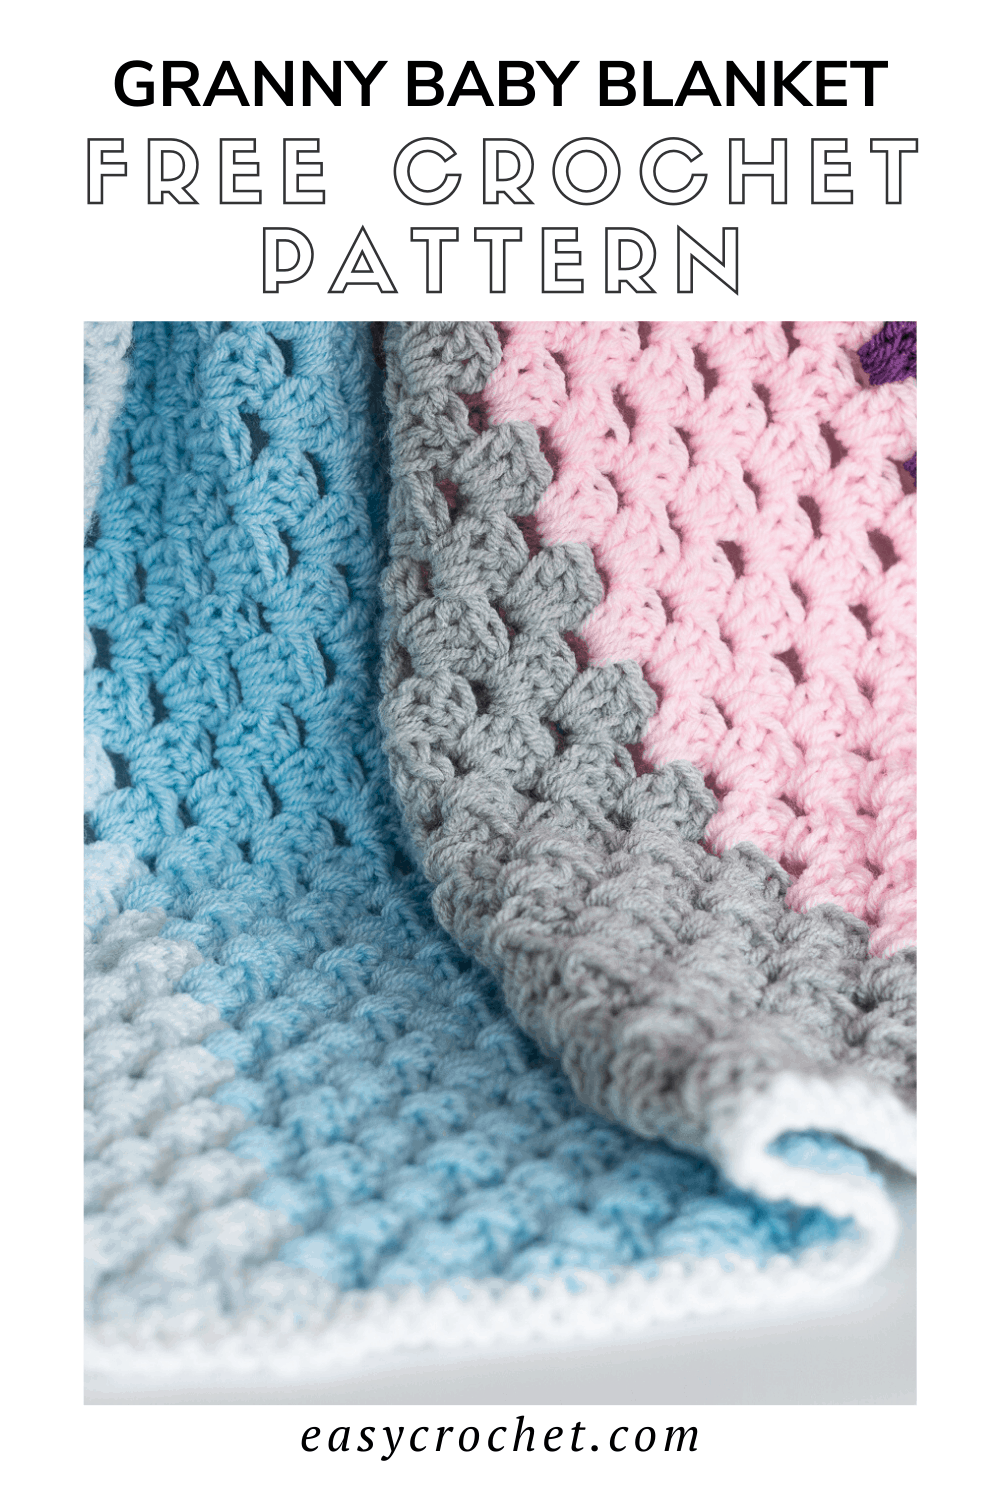 Granny Baby Blanket Crochet Pattern - Use this beginner-friendly granny stitch pattern to crochet an easy crocheted baby blanket pattern via @easycrochetcom